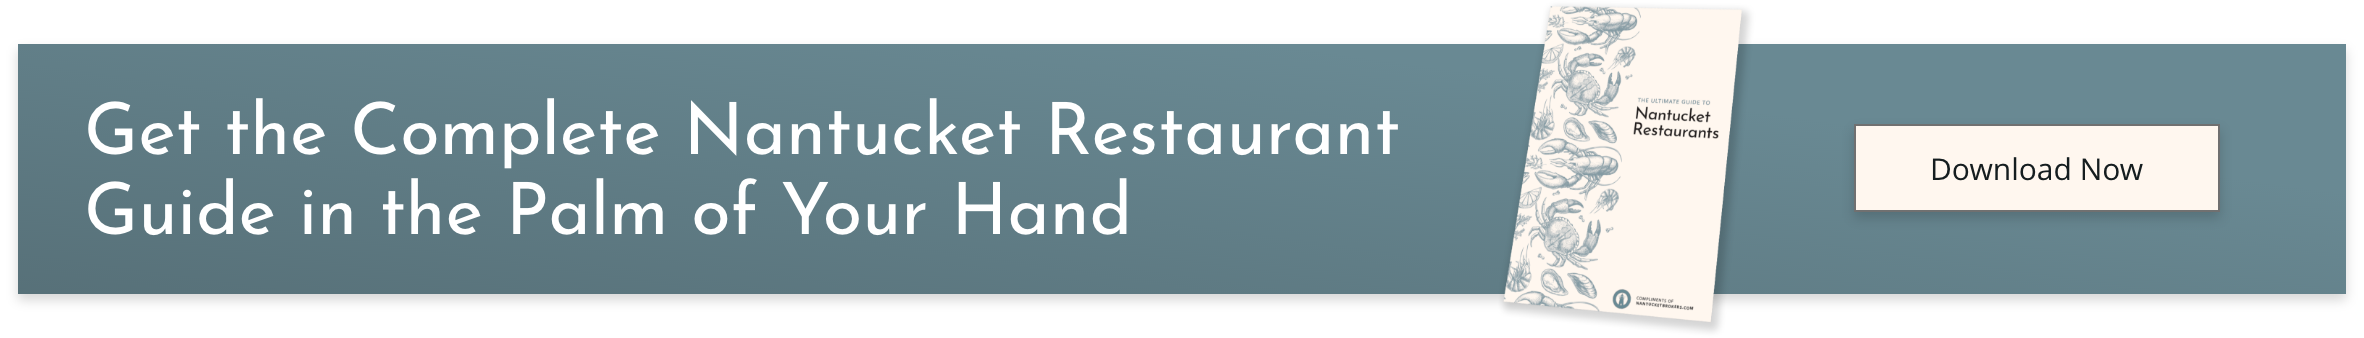 Nantucket Restaurants